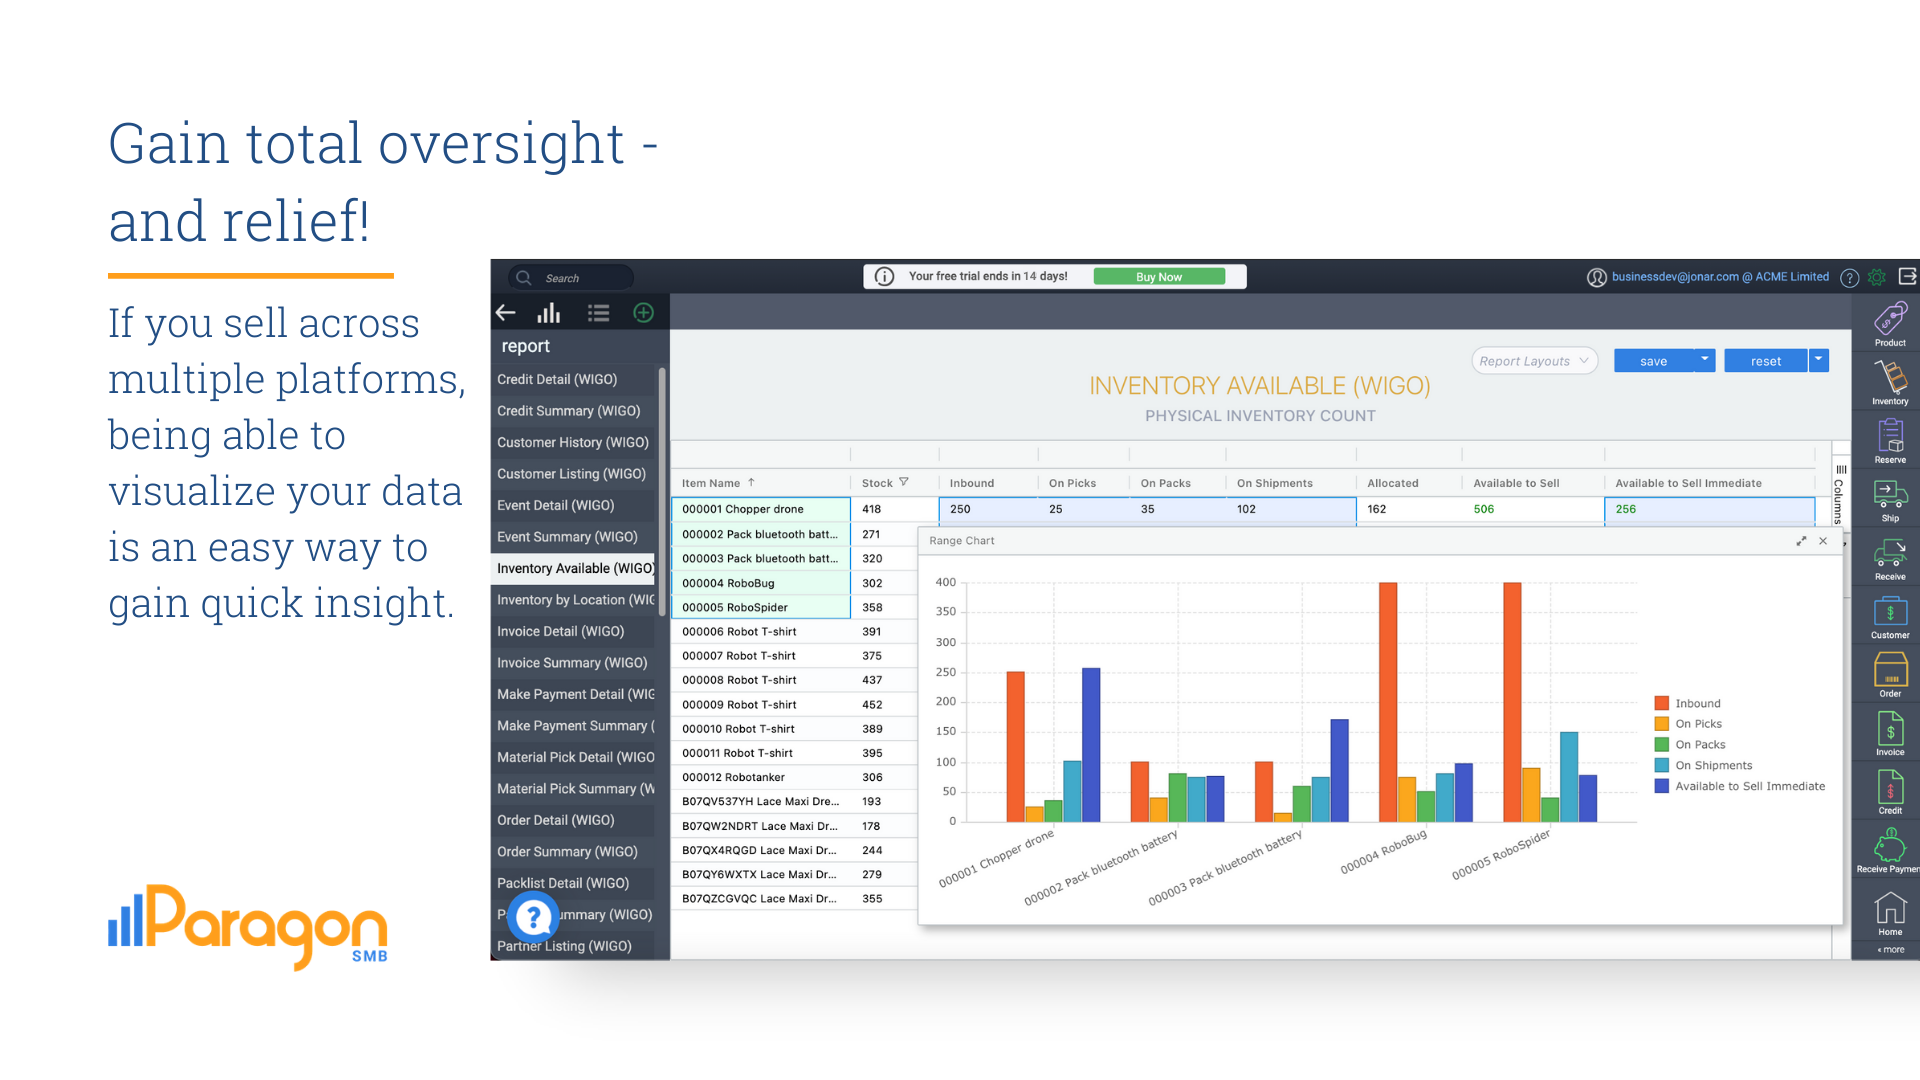 Software screen that shows an inventory available report with an additional bar chart that highlights certain products with inbound, pick, pack, shipment and available to sell statuses.